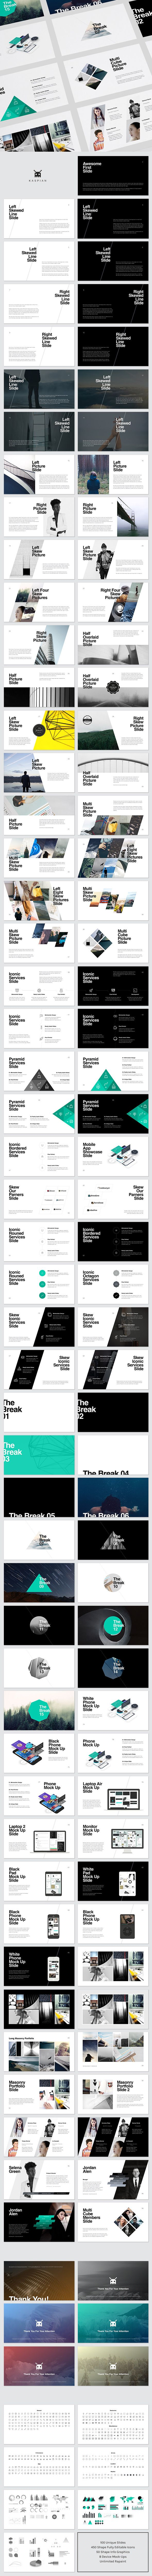 KASPIAN PowerPoint Presentation Template #slides #design Download: http://graphicriver.net/item/kaspian-powerpoint-presentation/14293362?ref=ksioks                                                                                                                                                                                 Mais